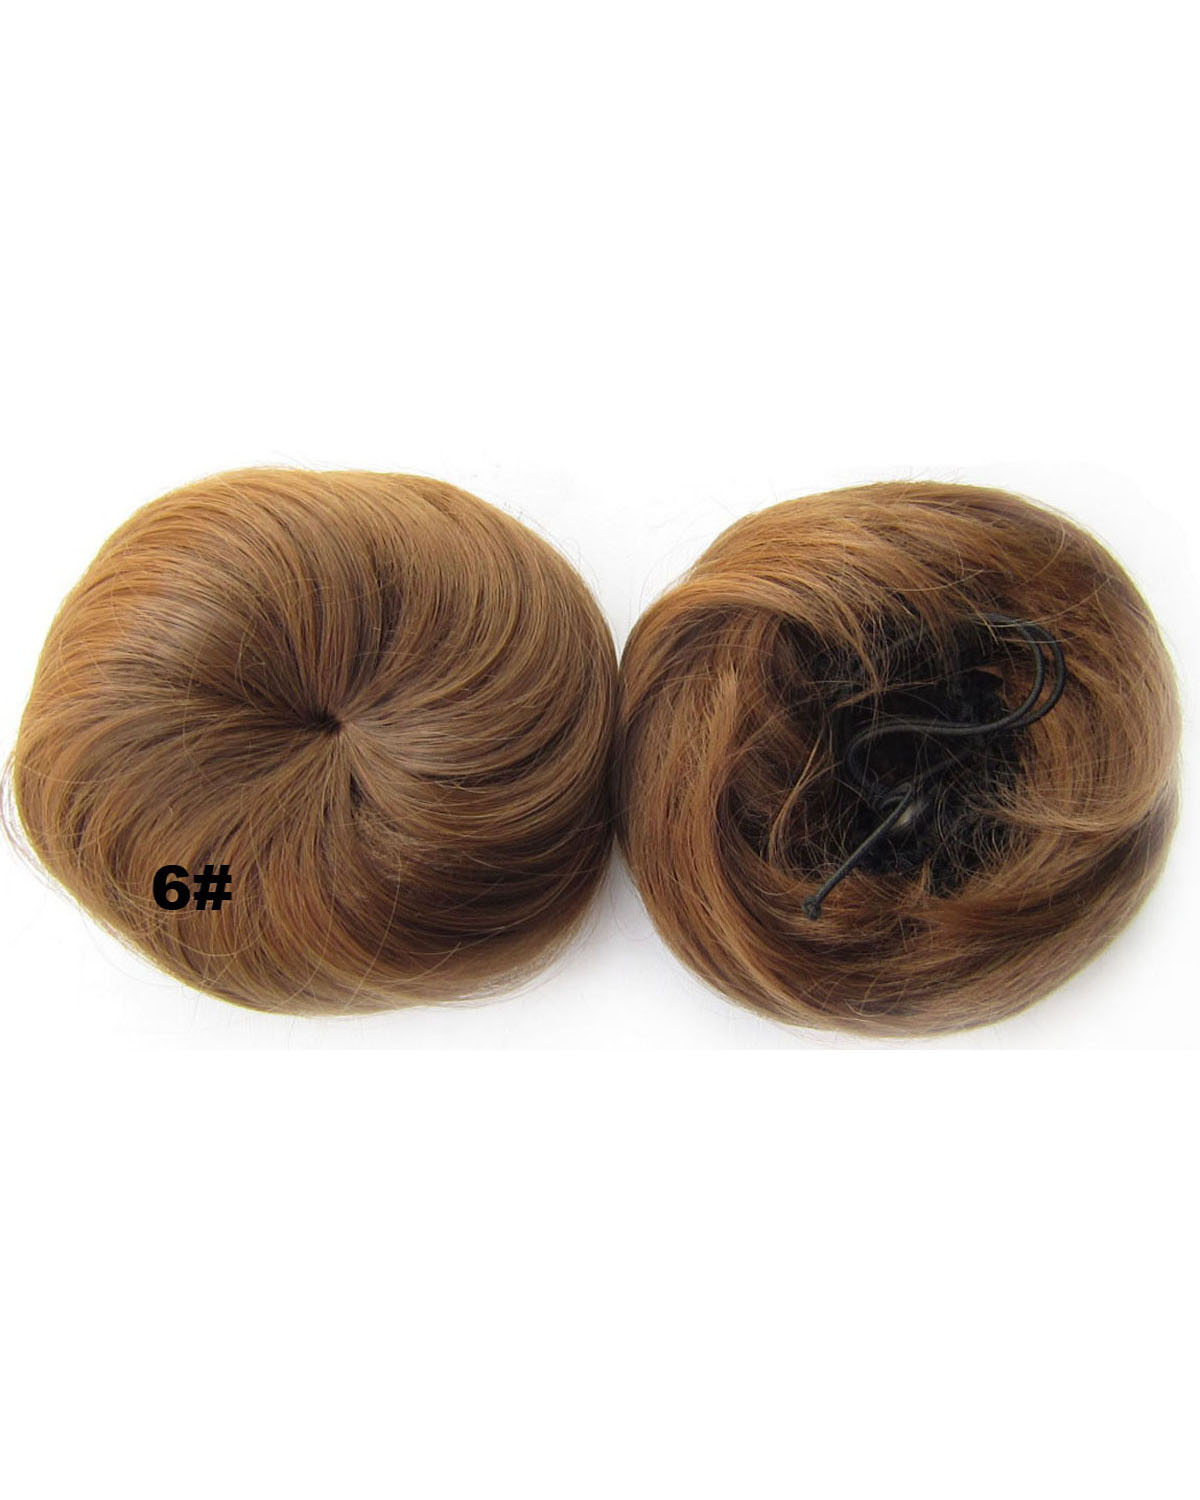 Ladies Lustrous Straight Short Hair Buns Drawstring Synthetic Hair Extension Bride Scrunchies 6#